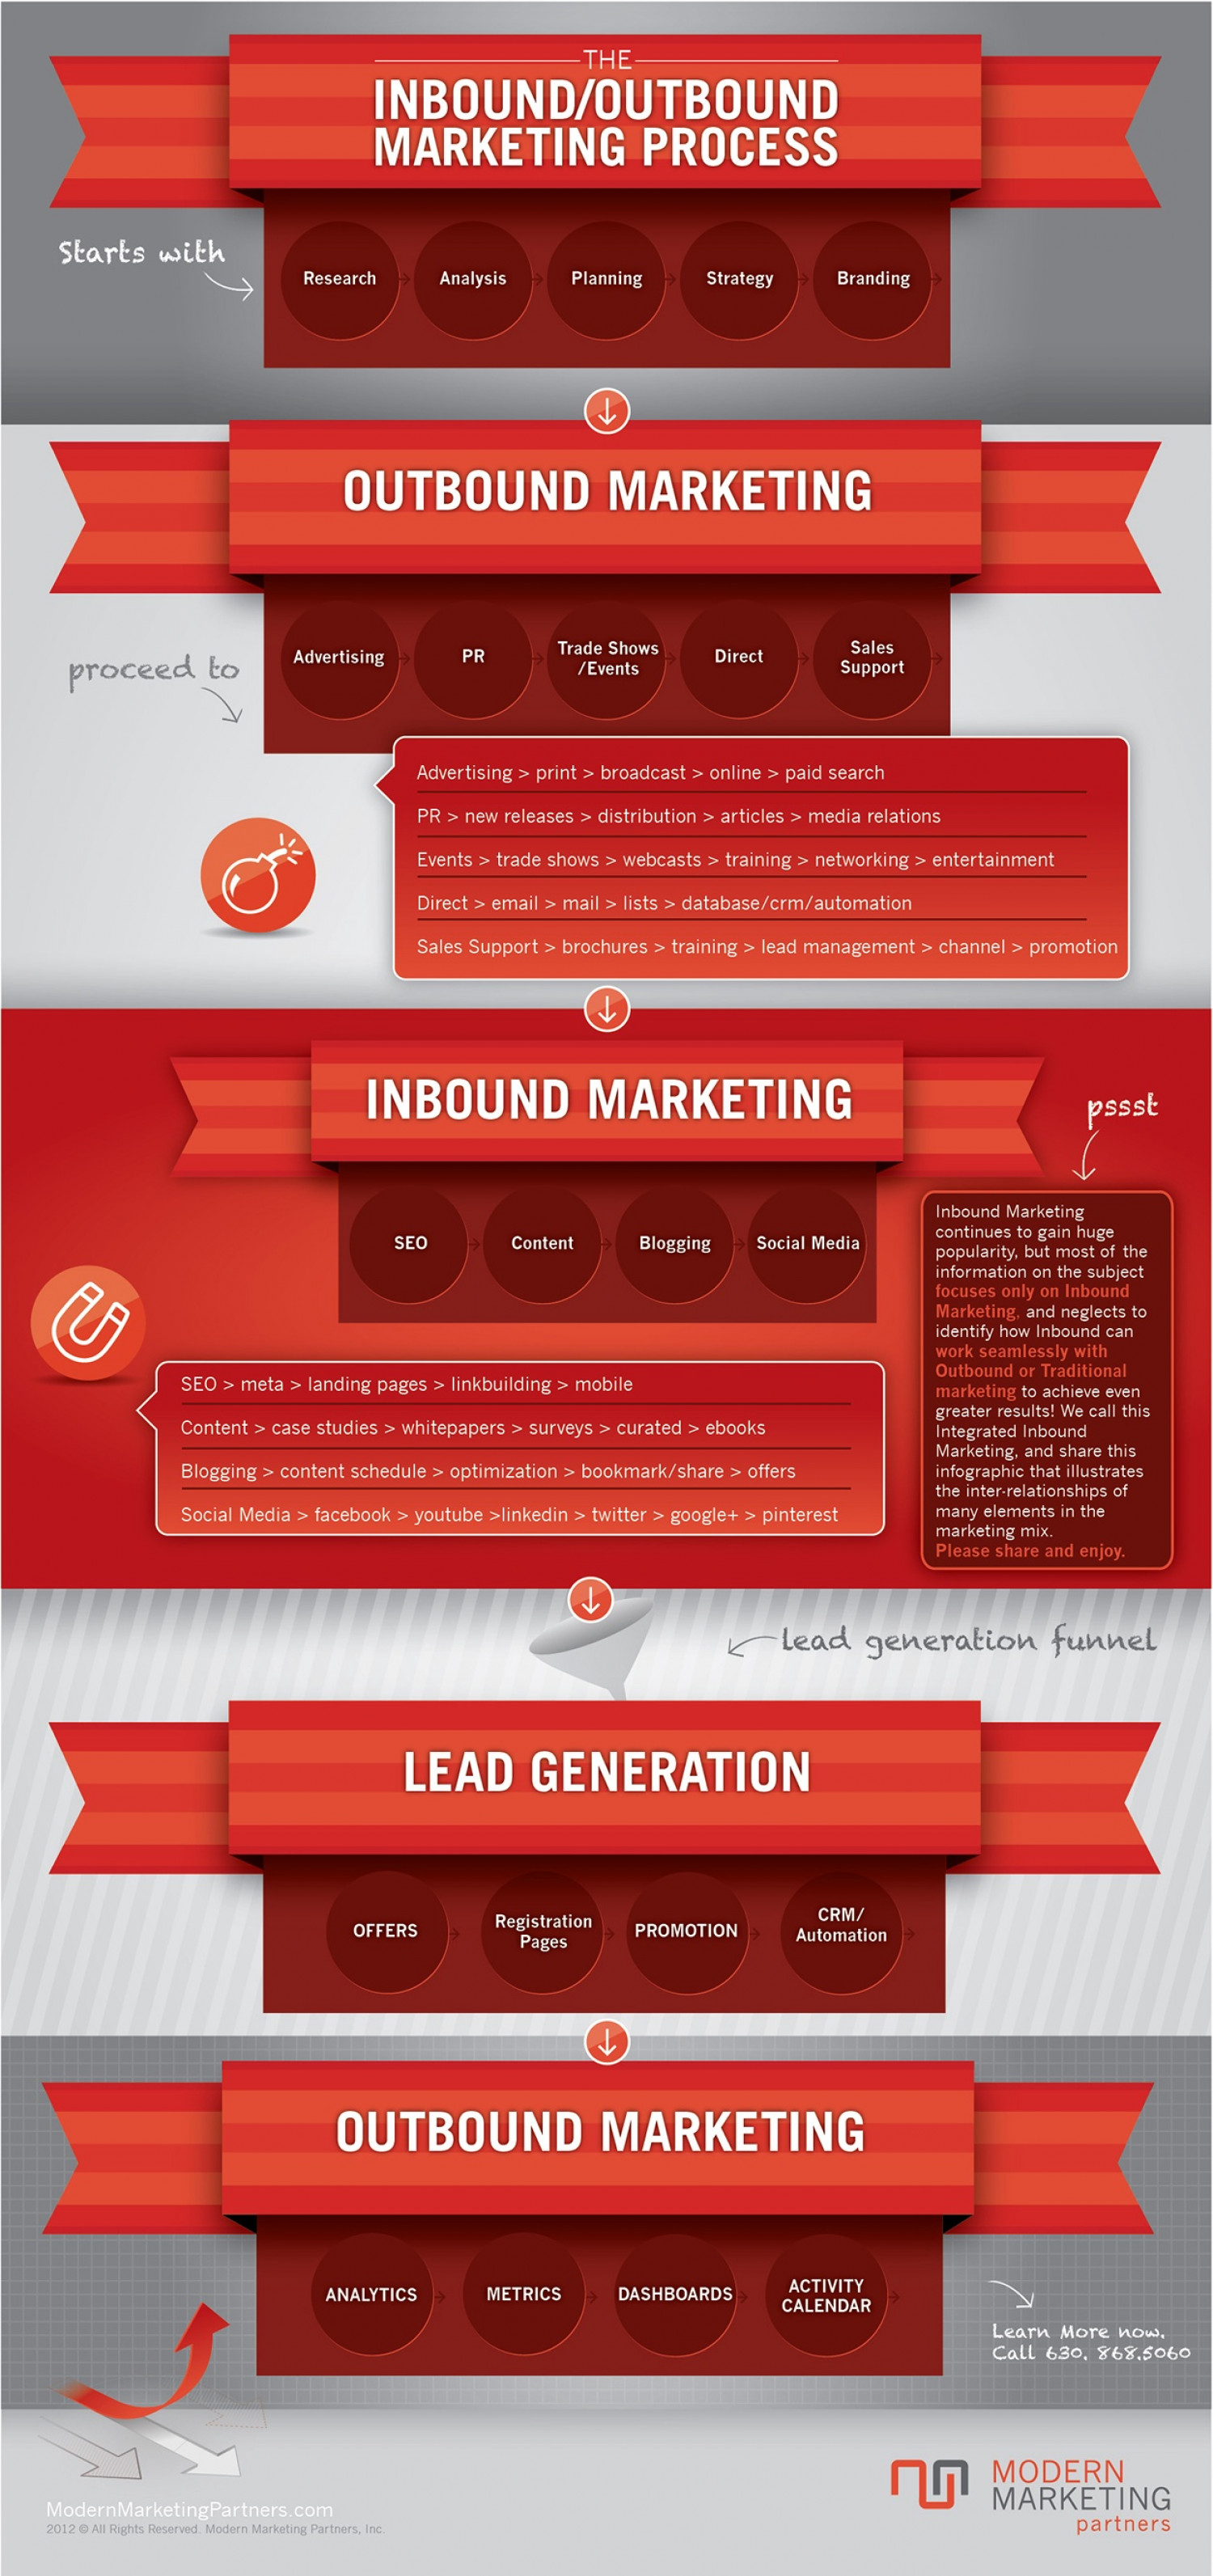 The Inbound/Outbound Marketing Process Infographic